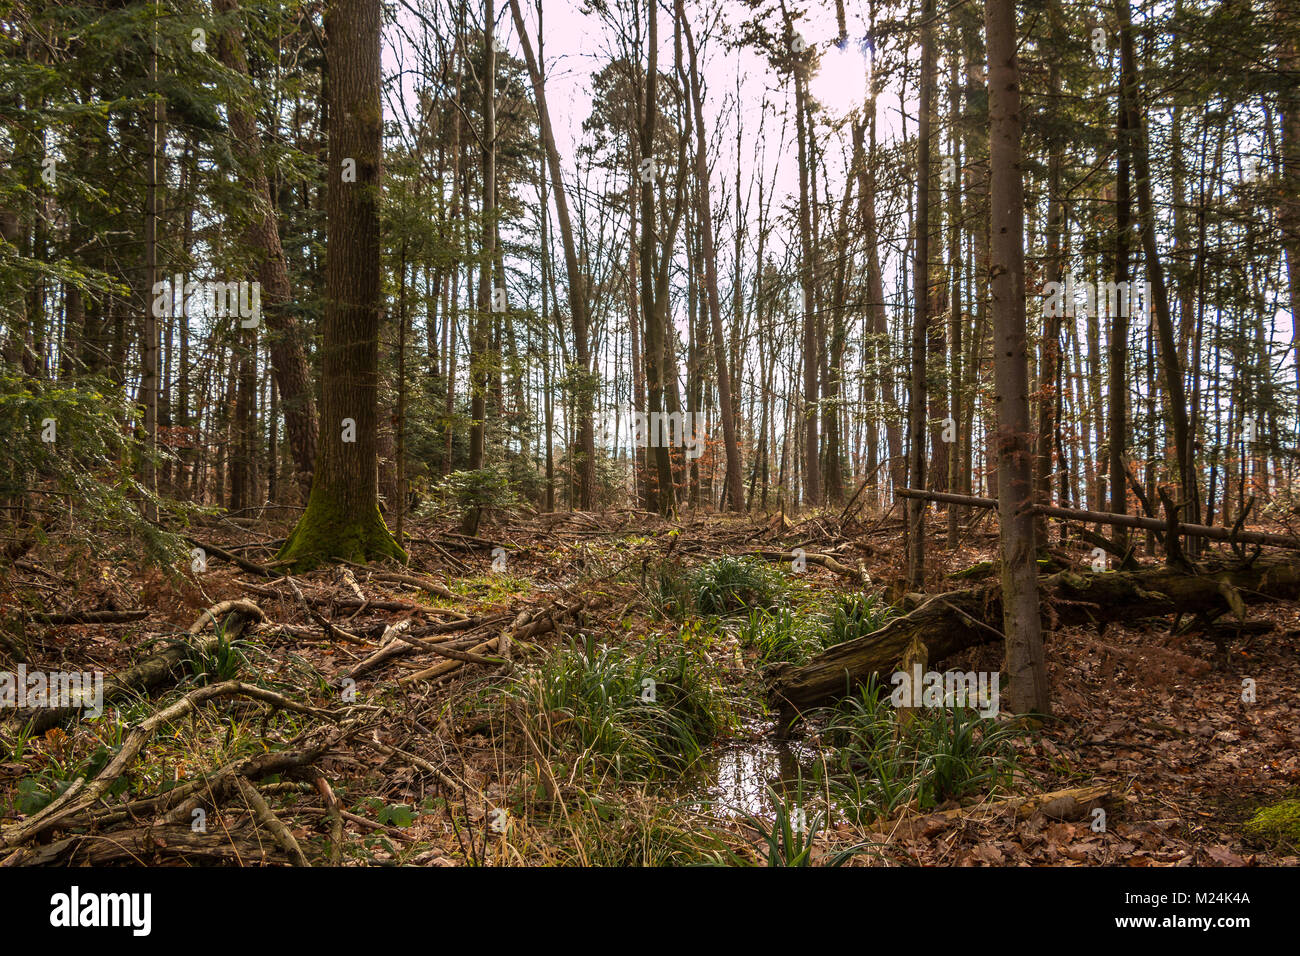 Ground of the forest after a big storm - Stock Image